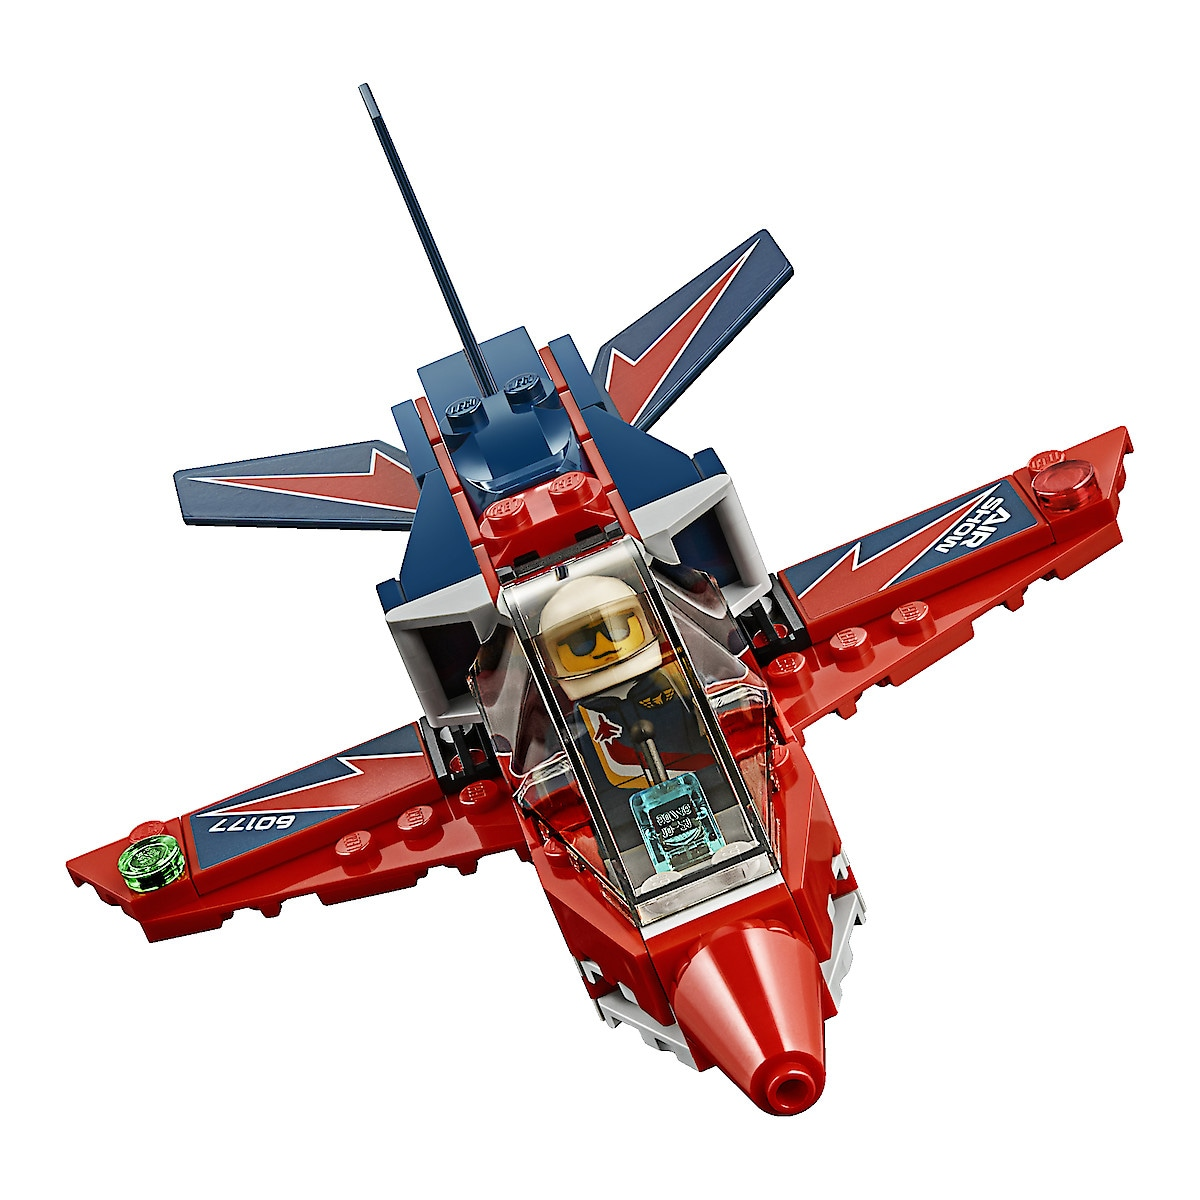 LEGO City Great Vehicles 60177, Airshow Jet